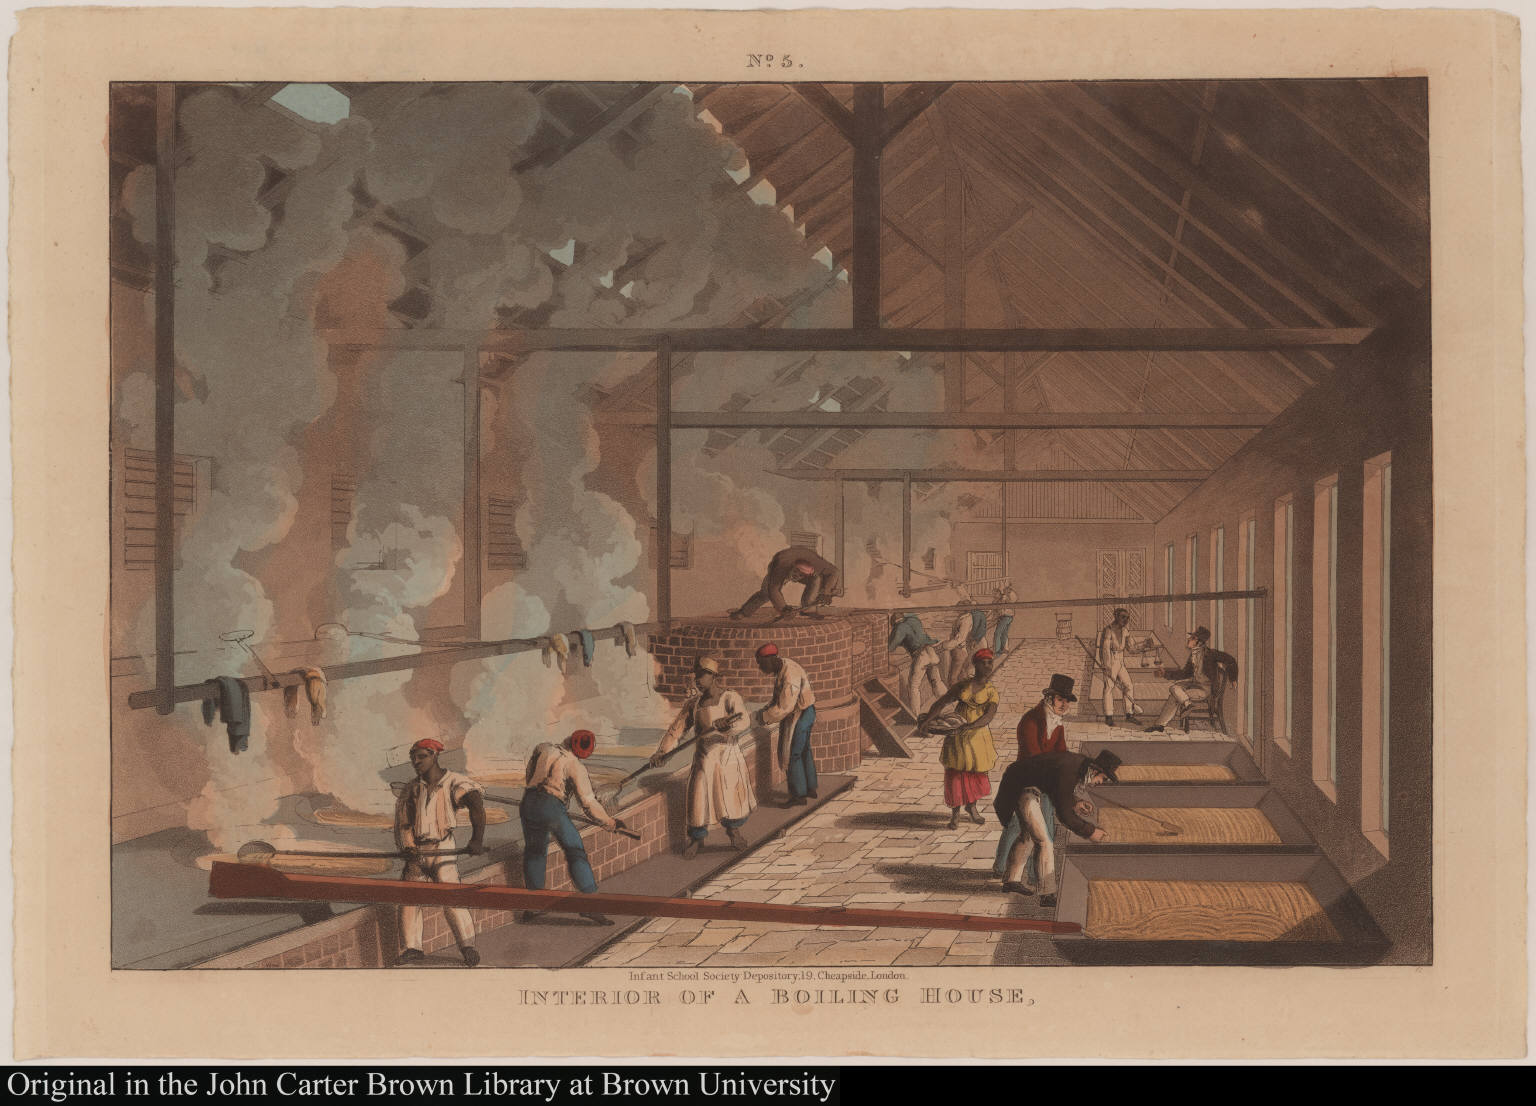 Interior of a boiling house